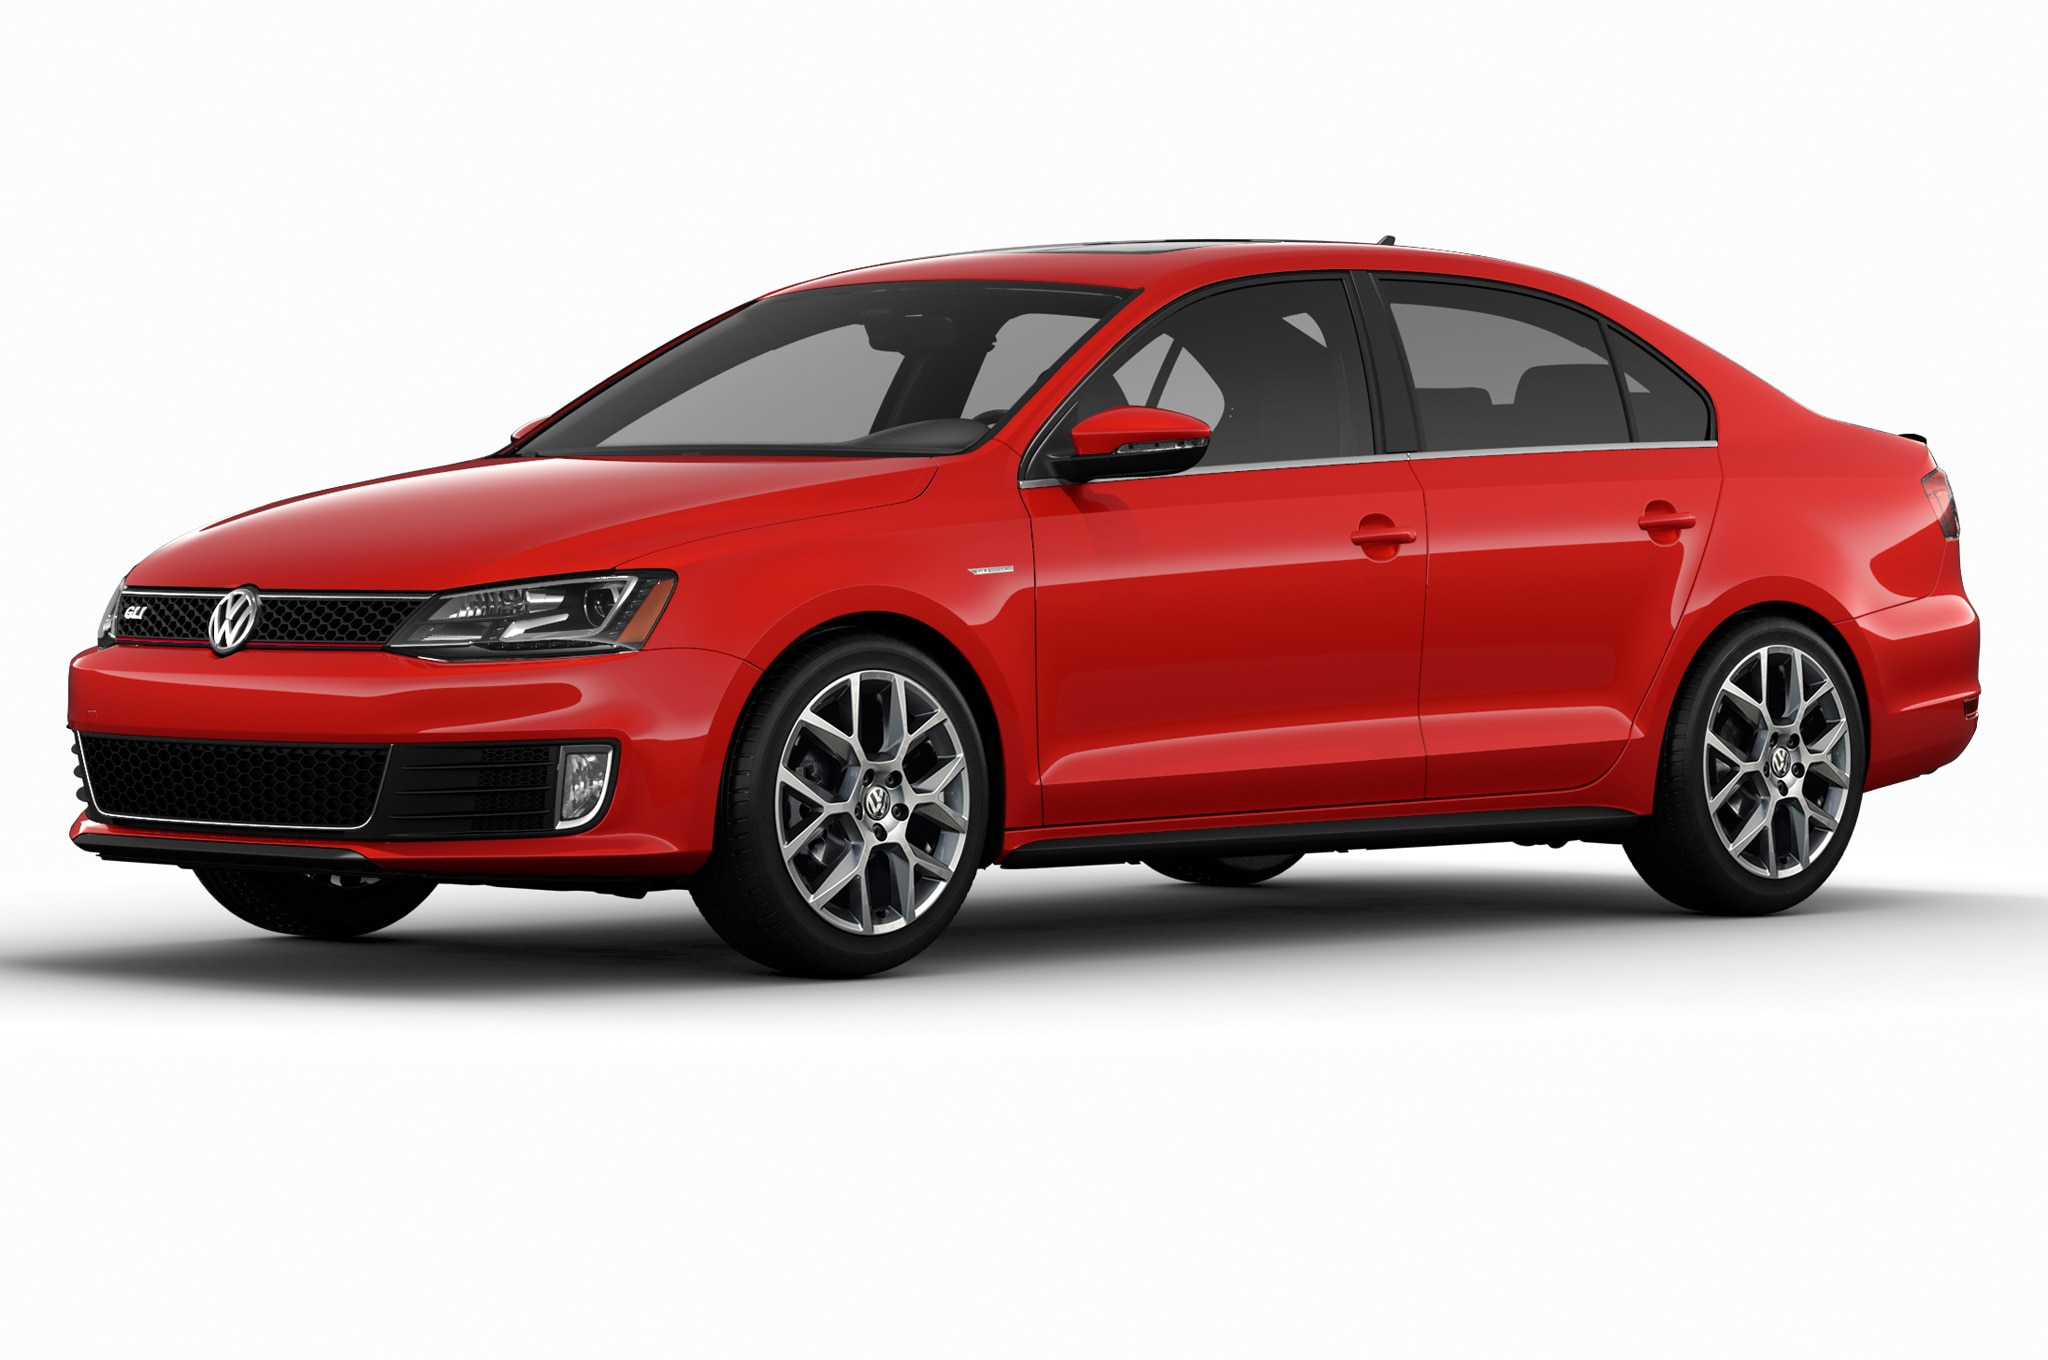 2014 Volkswagen Jetta GLI Edition 30 Front Side View